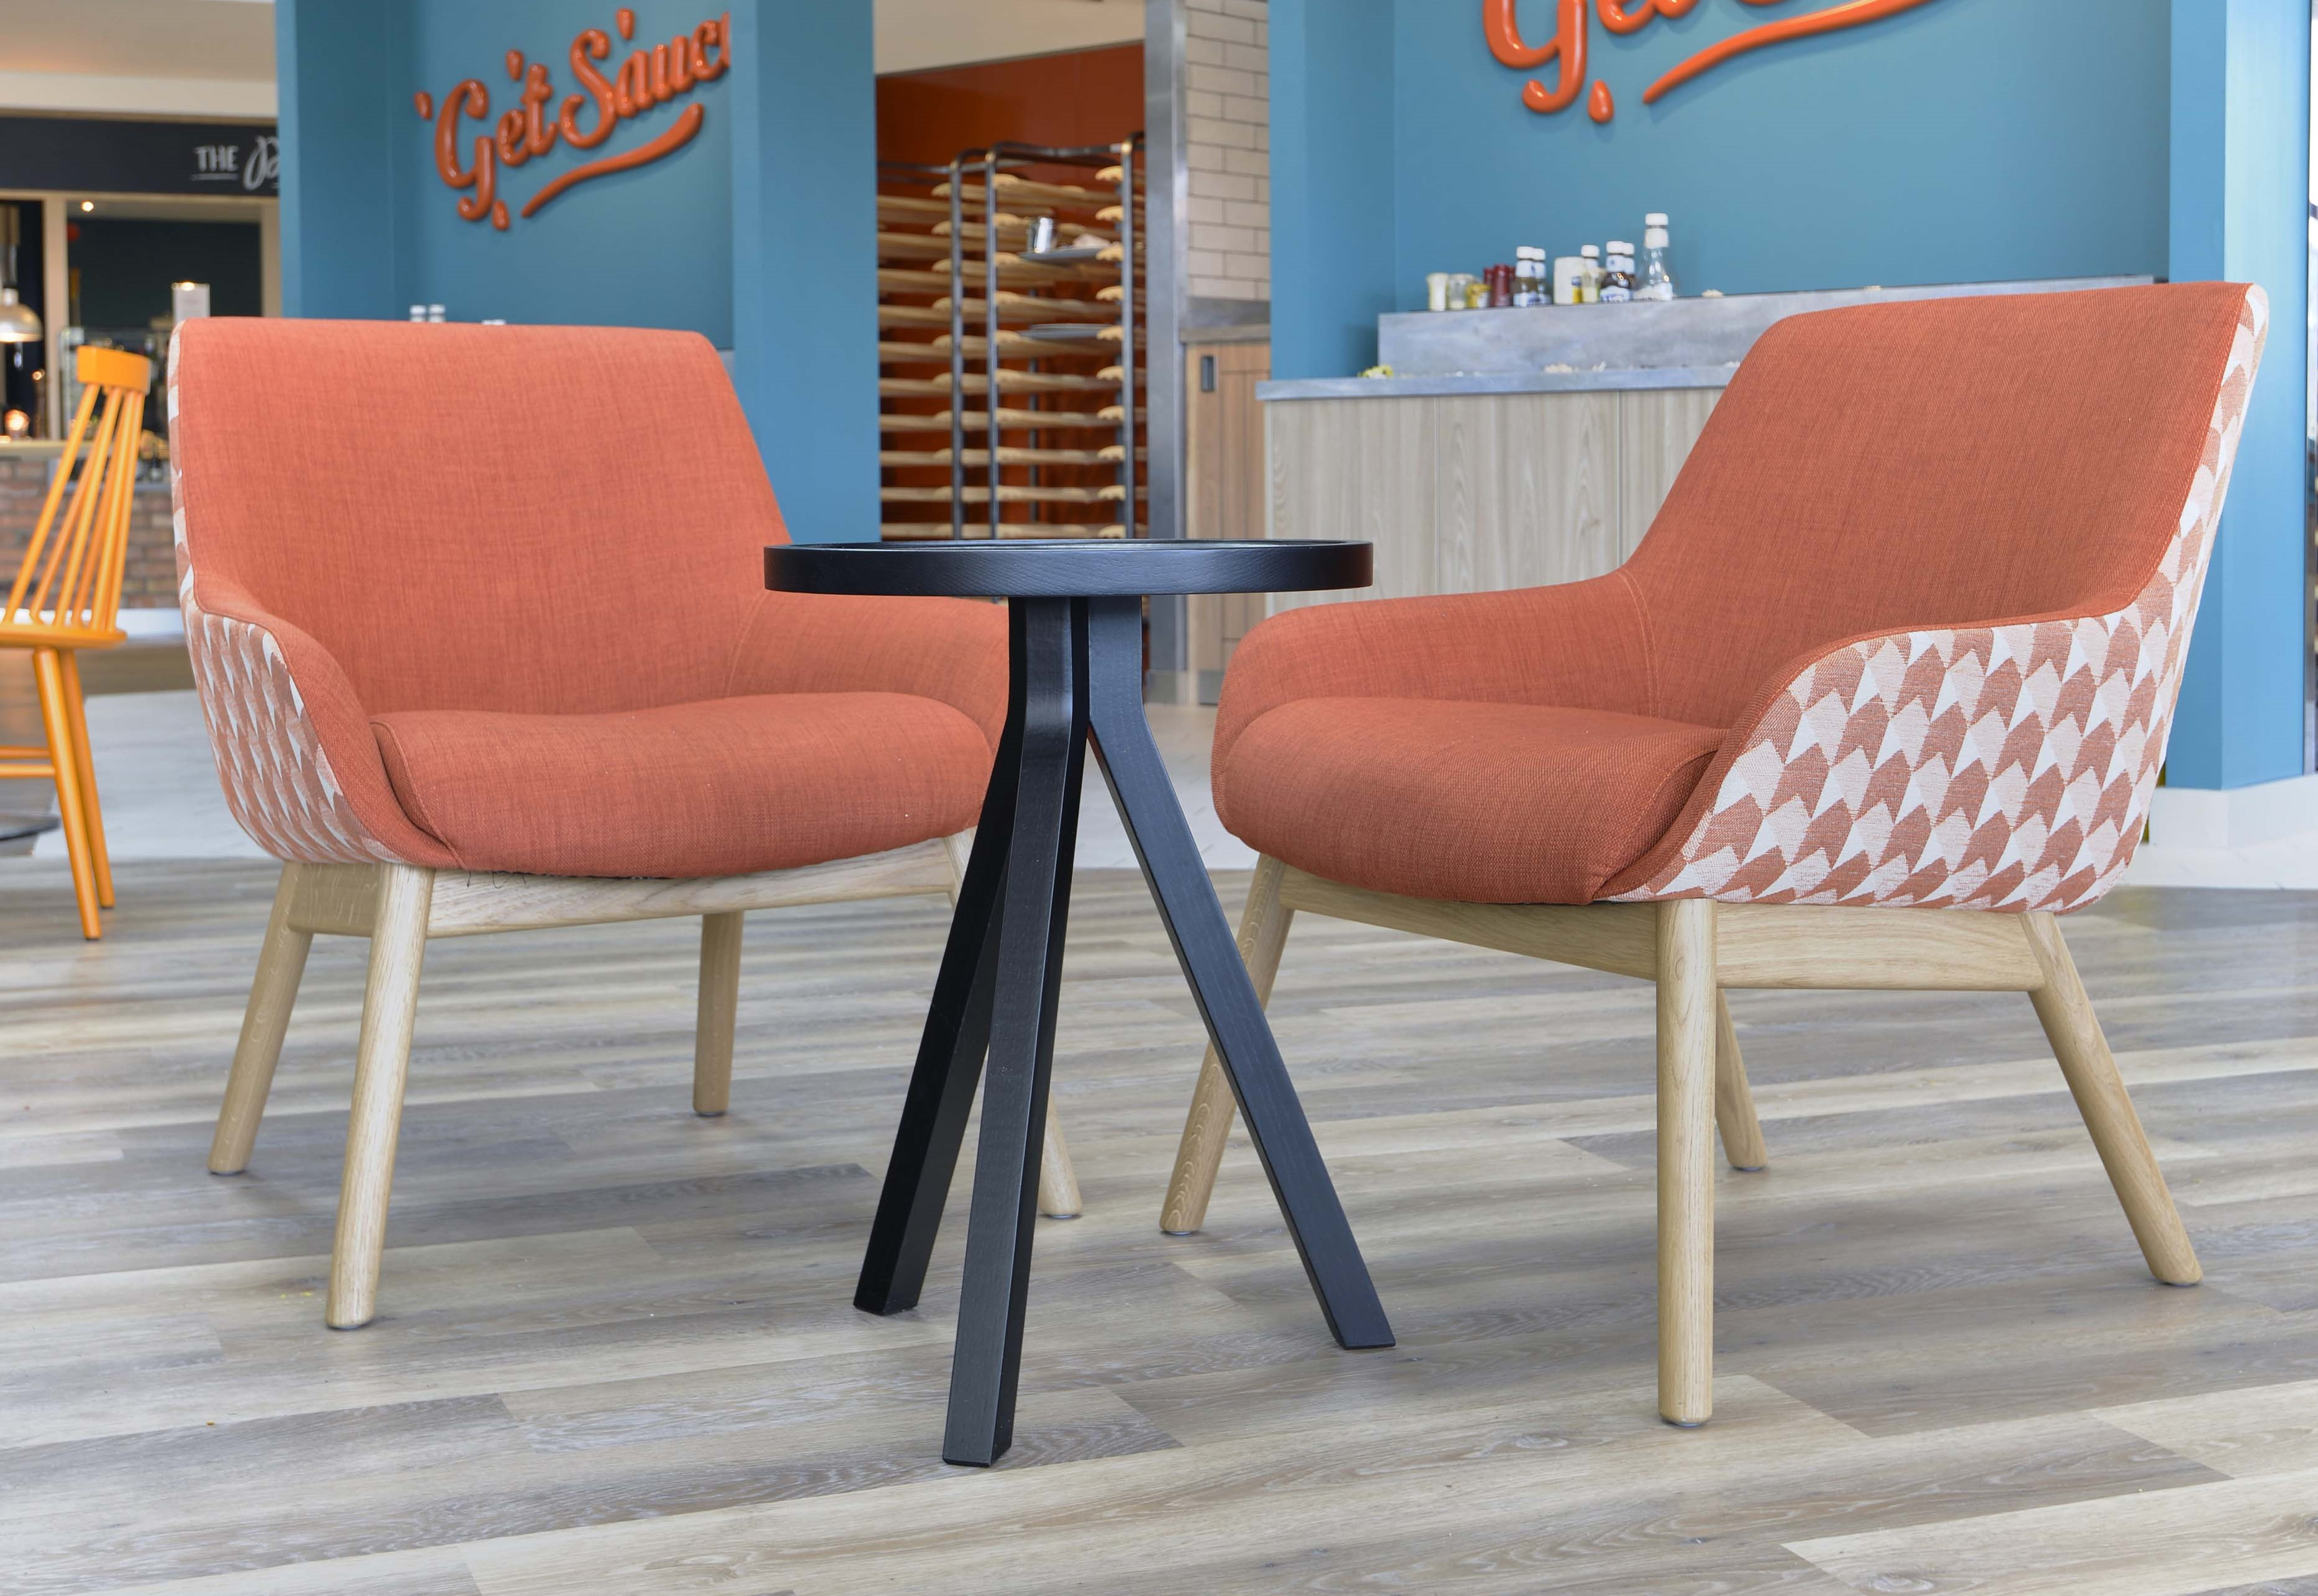 Image of two dual-tone chairs on wooden legs